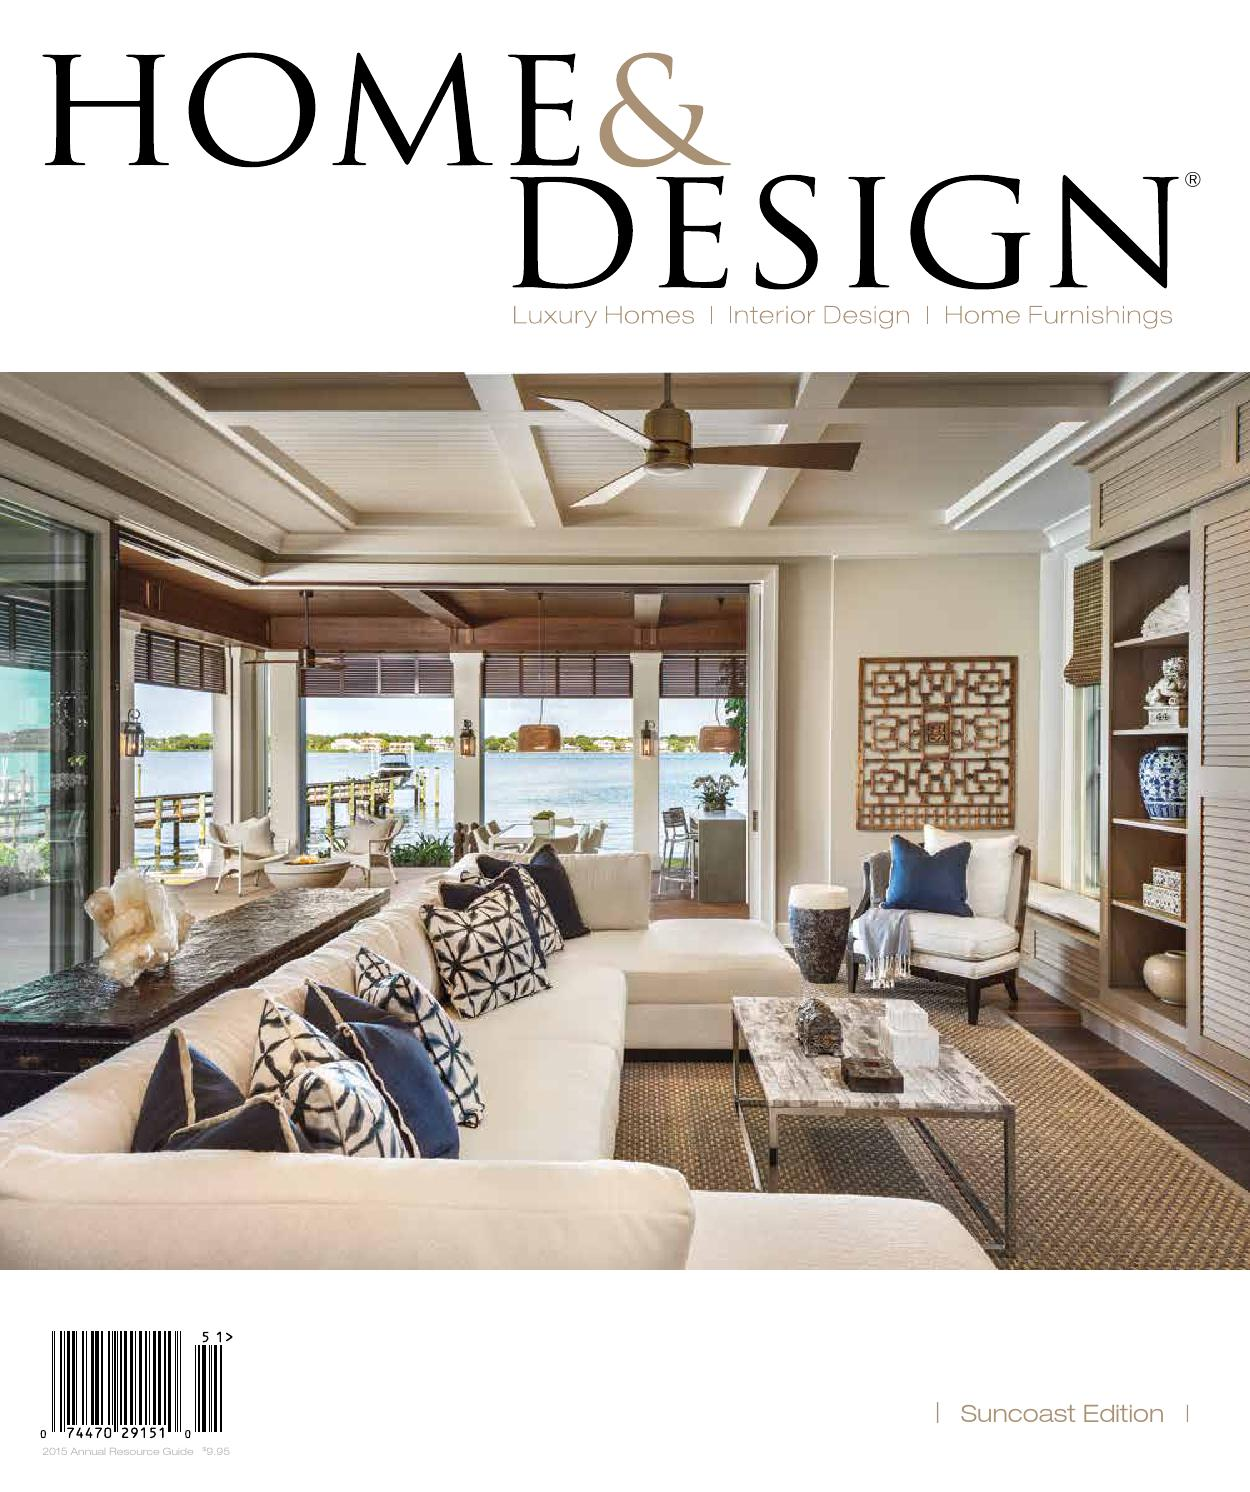 Home & Design Magazine  Annual Resource Guide 2015